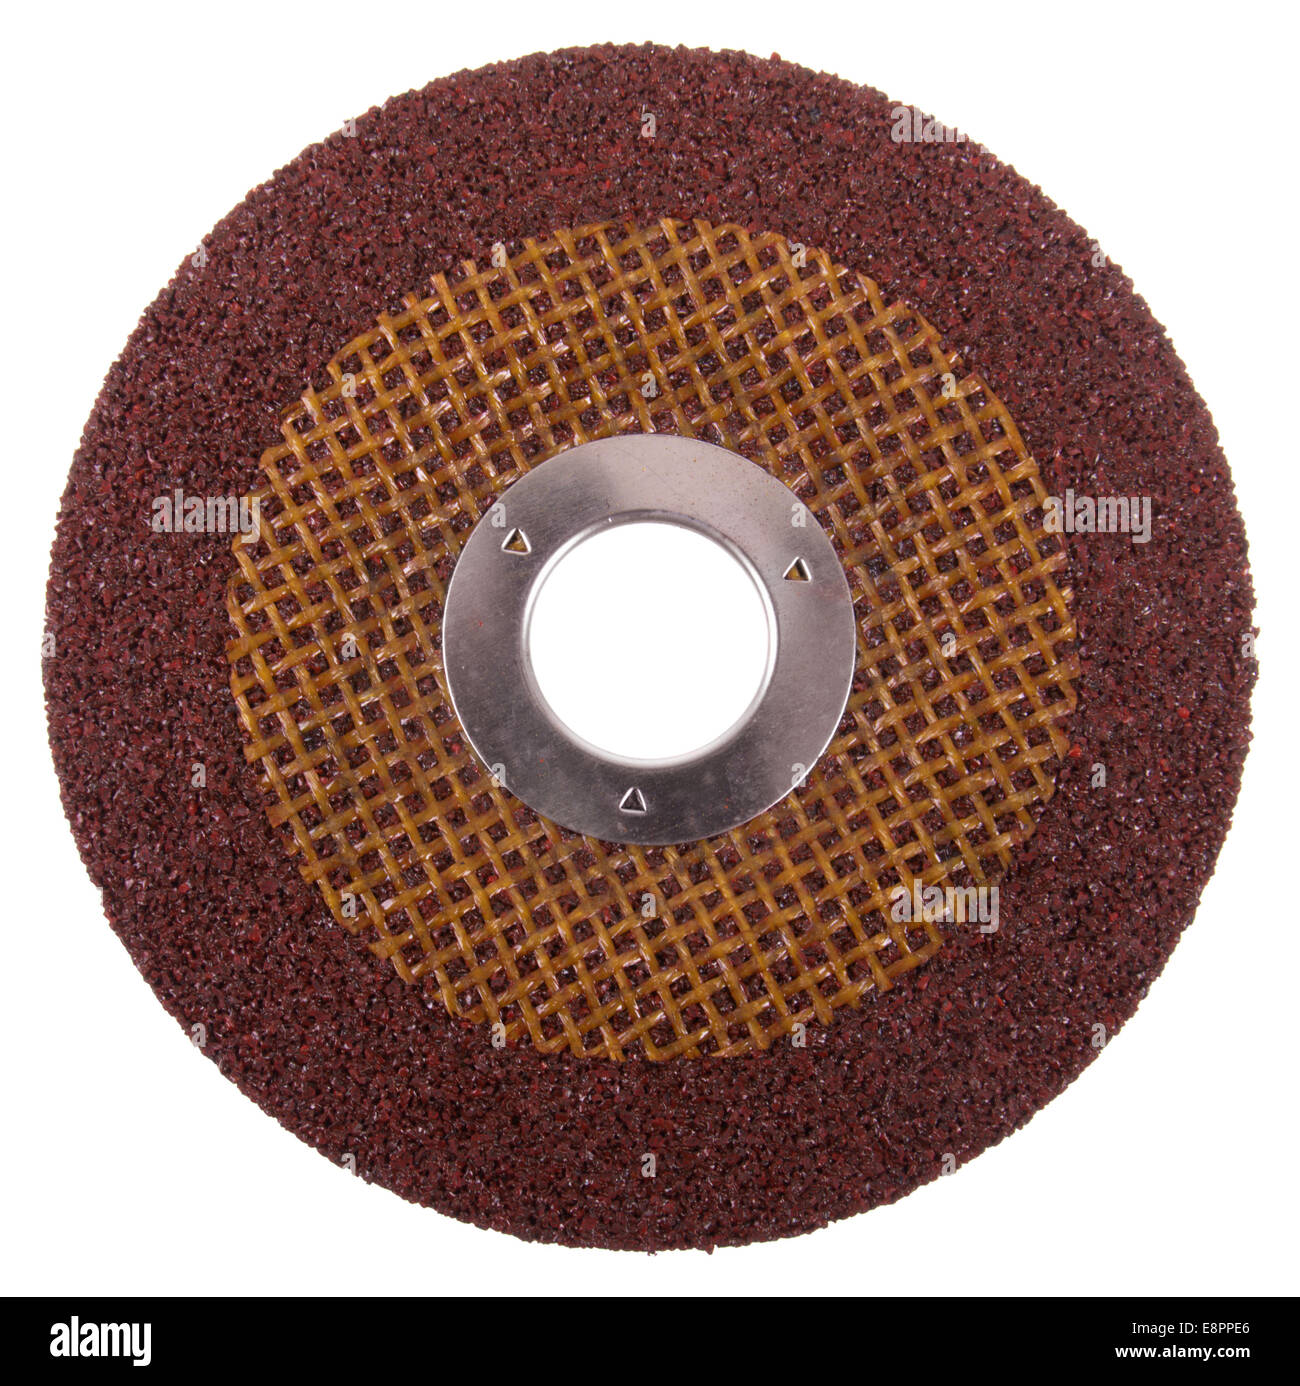 Angle Grinder Disc For Grinding Steel - Stock Image